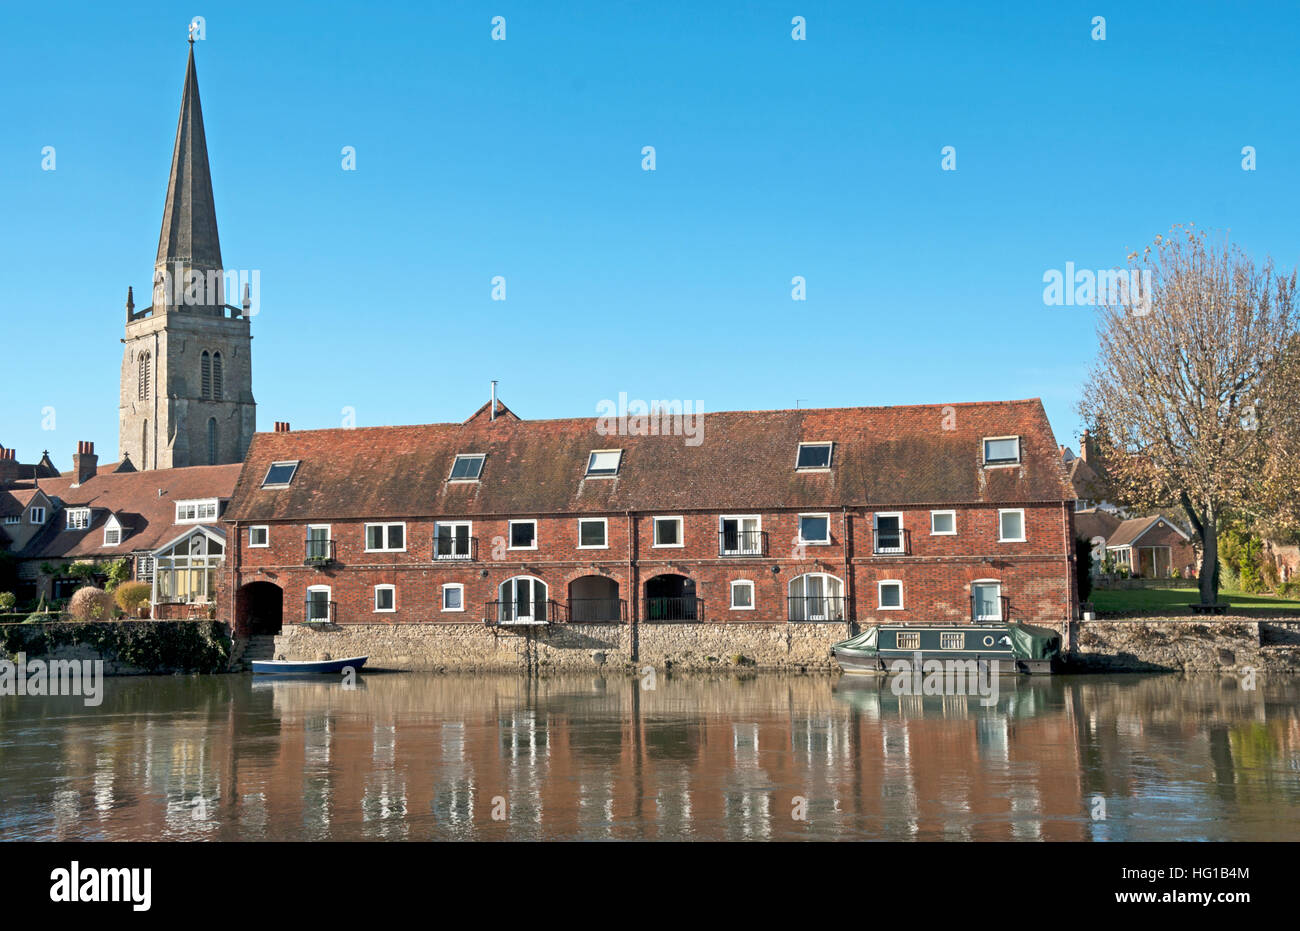 Abingdon, Buildings and St Helens Church Spire by River Thames, Oxfordshire, England, - Stock Image